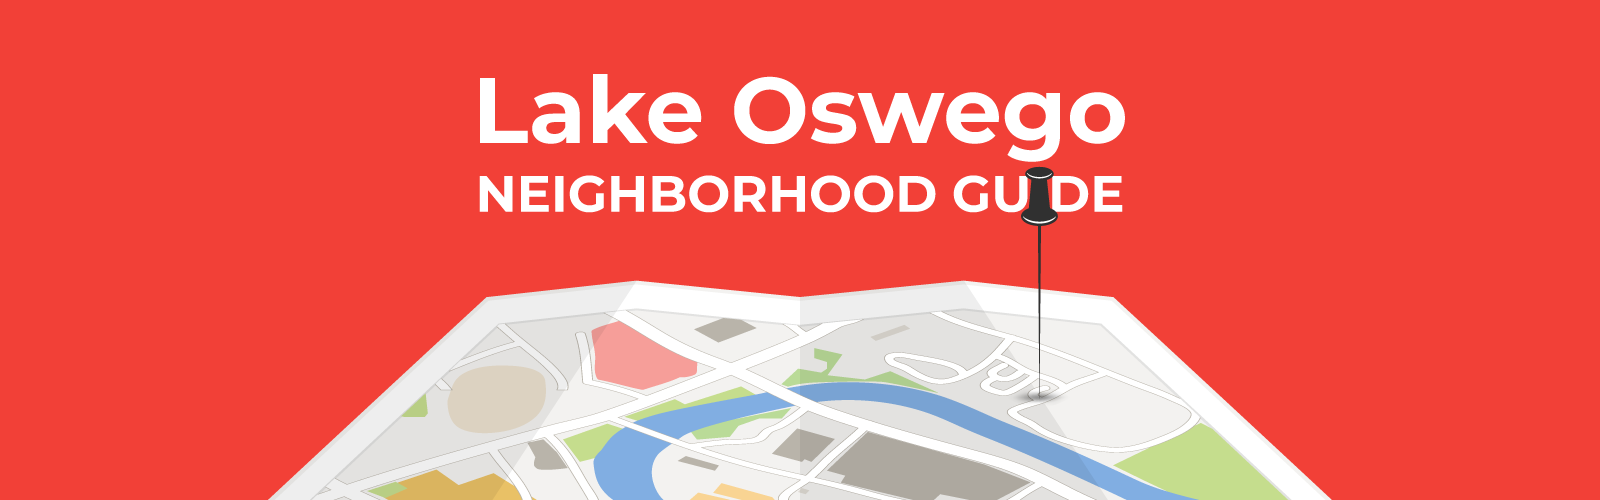 Lake Oswego Neighborhood Guide